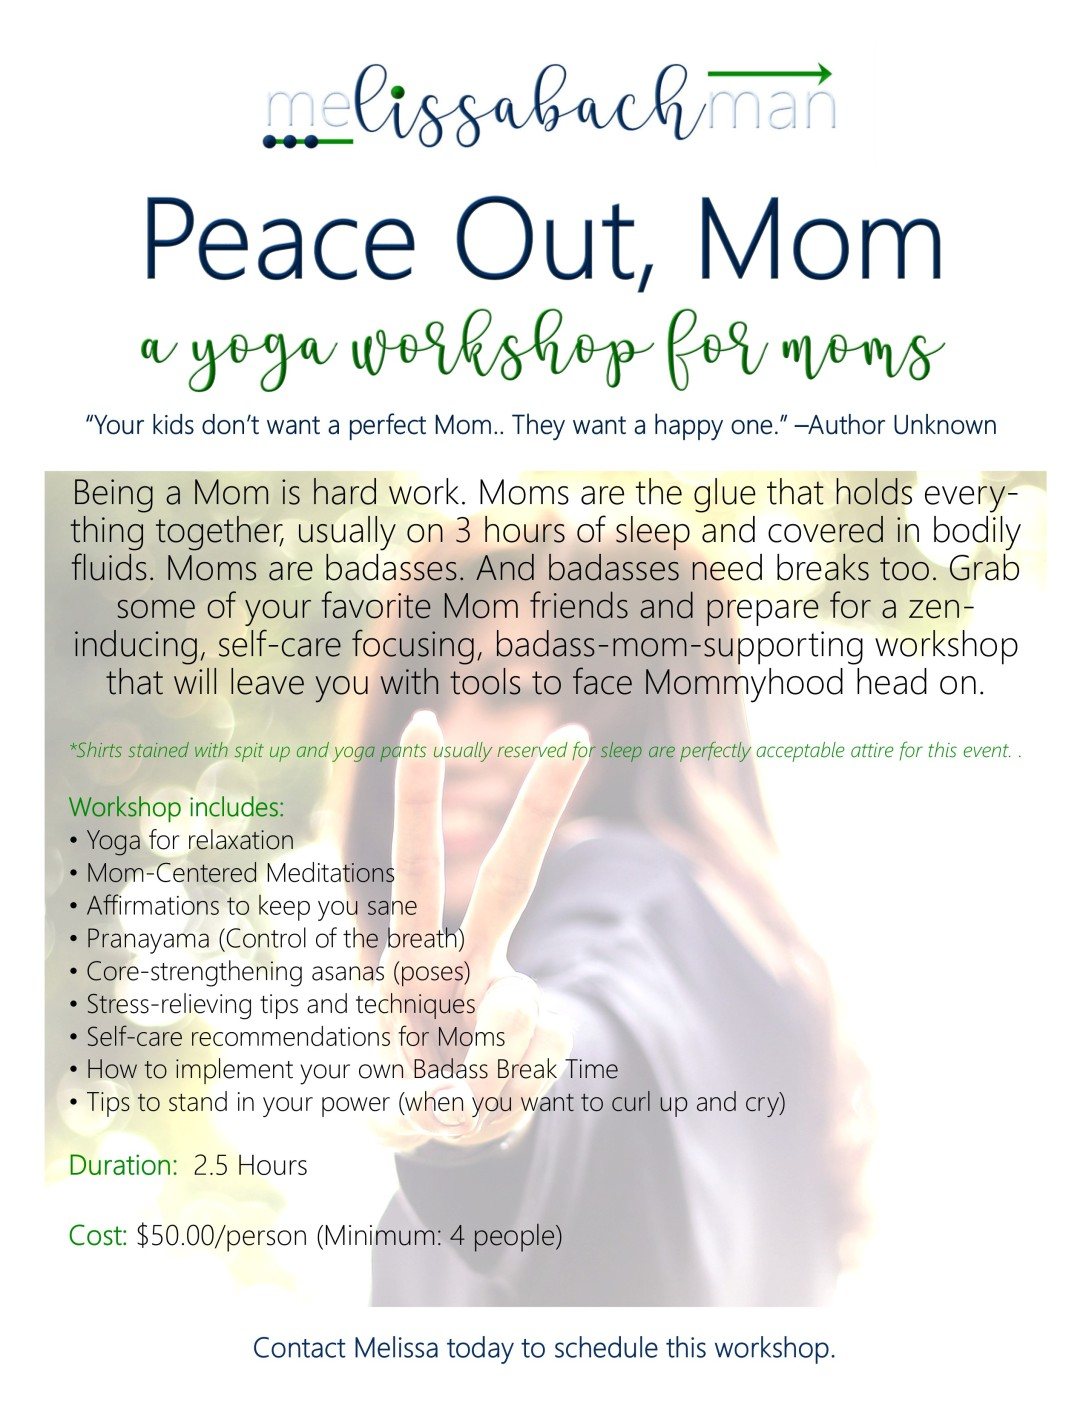 Peace Out, Mom Workshop WEBSITE